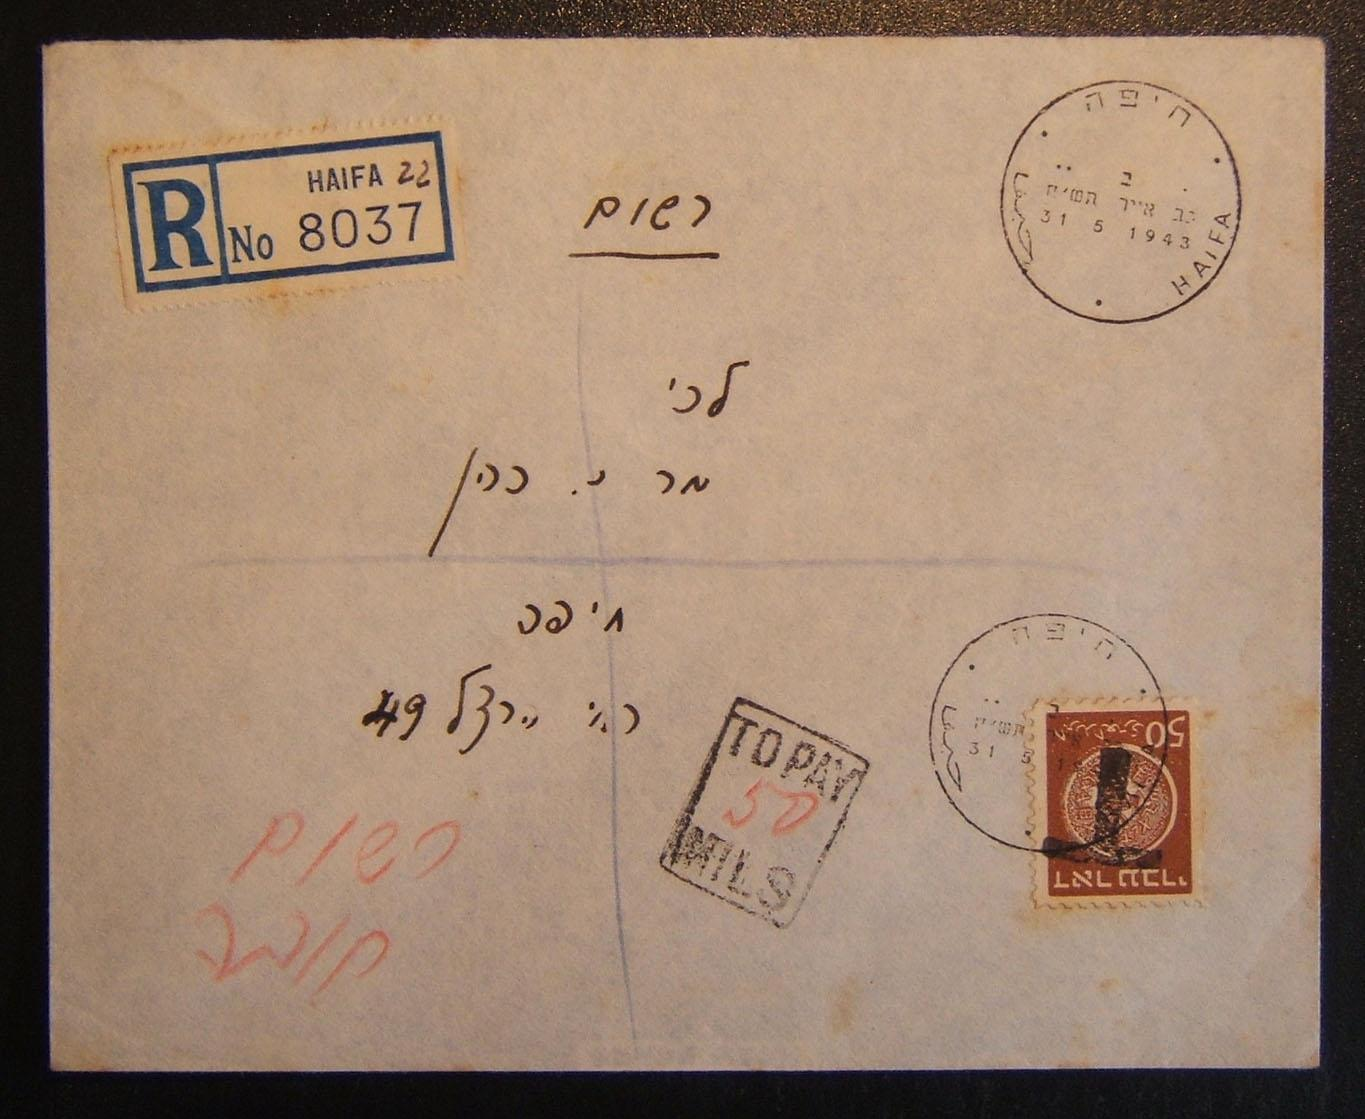 Doar Ivri last day as Postage Dues in Haifa: reg cvr sent unfranked 31-05-48